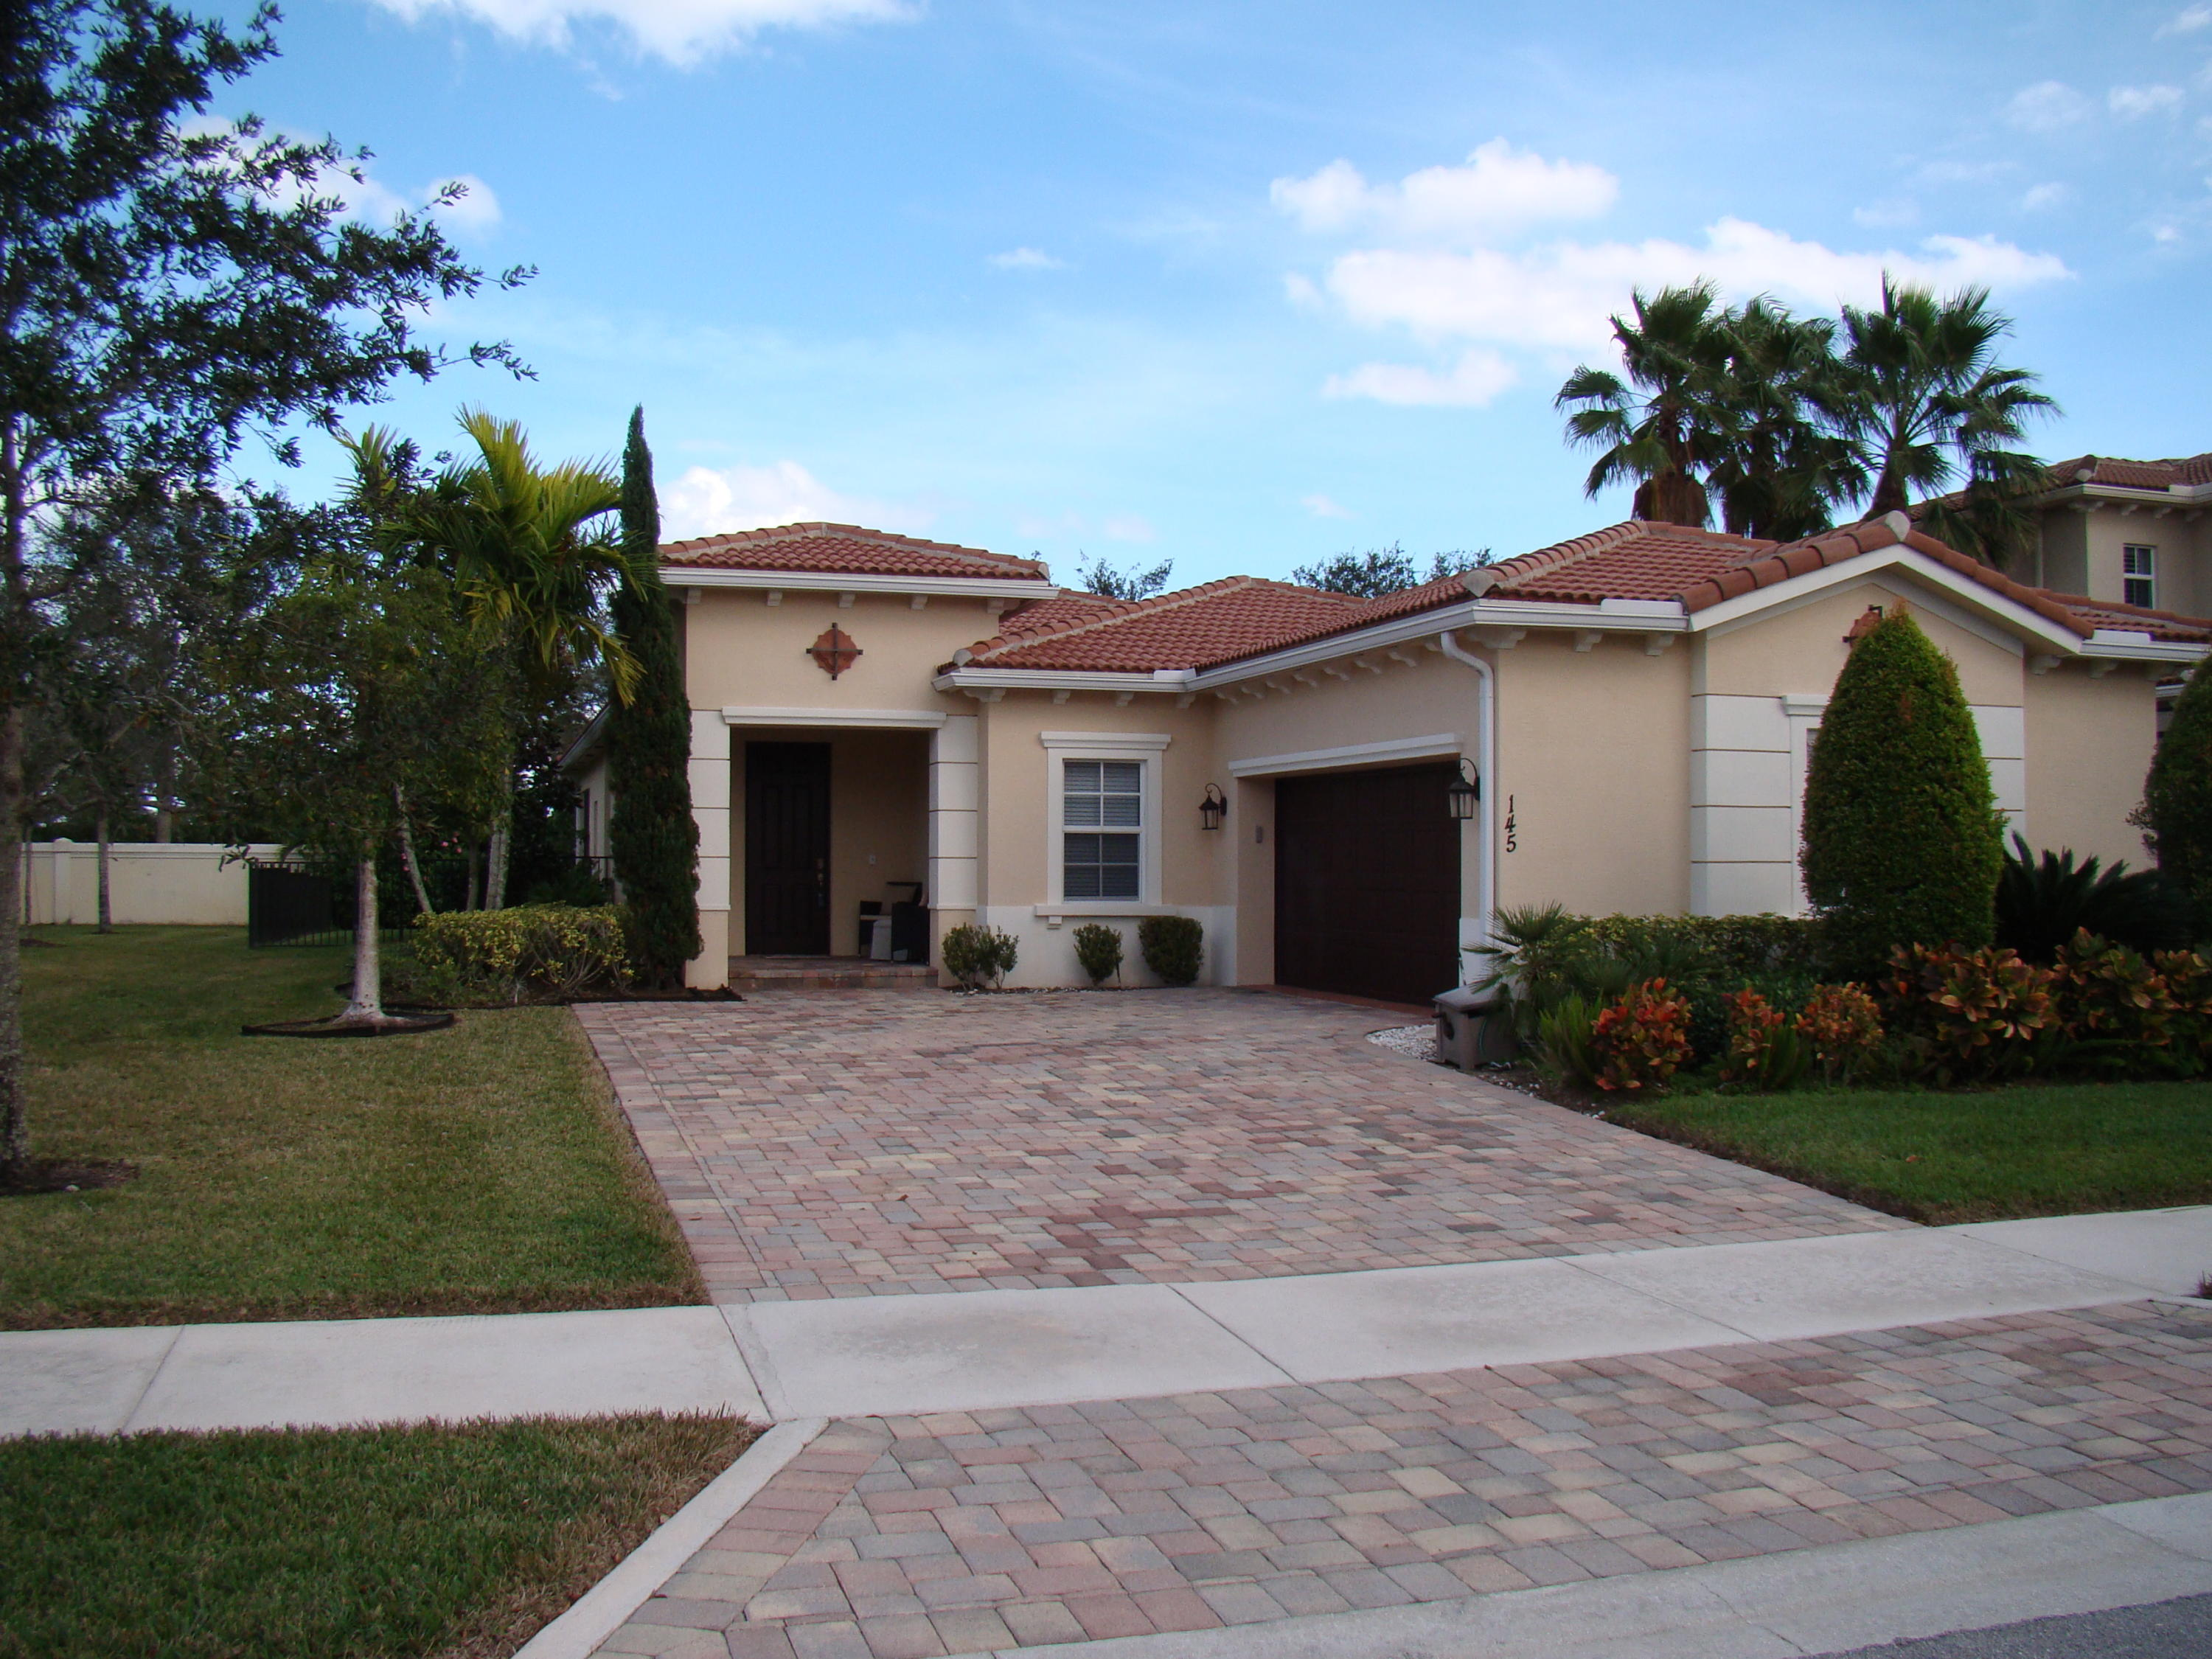 LOXAHATCHEE RESERVE NORTH REAL ESTATE